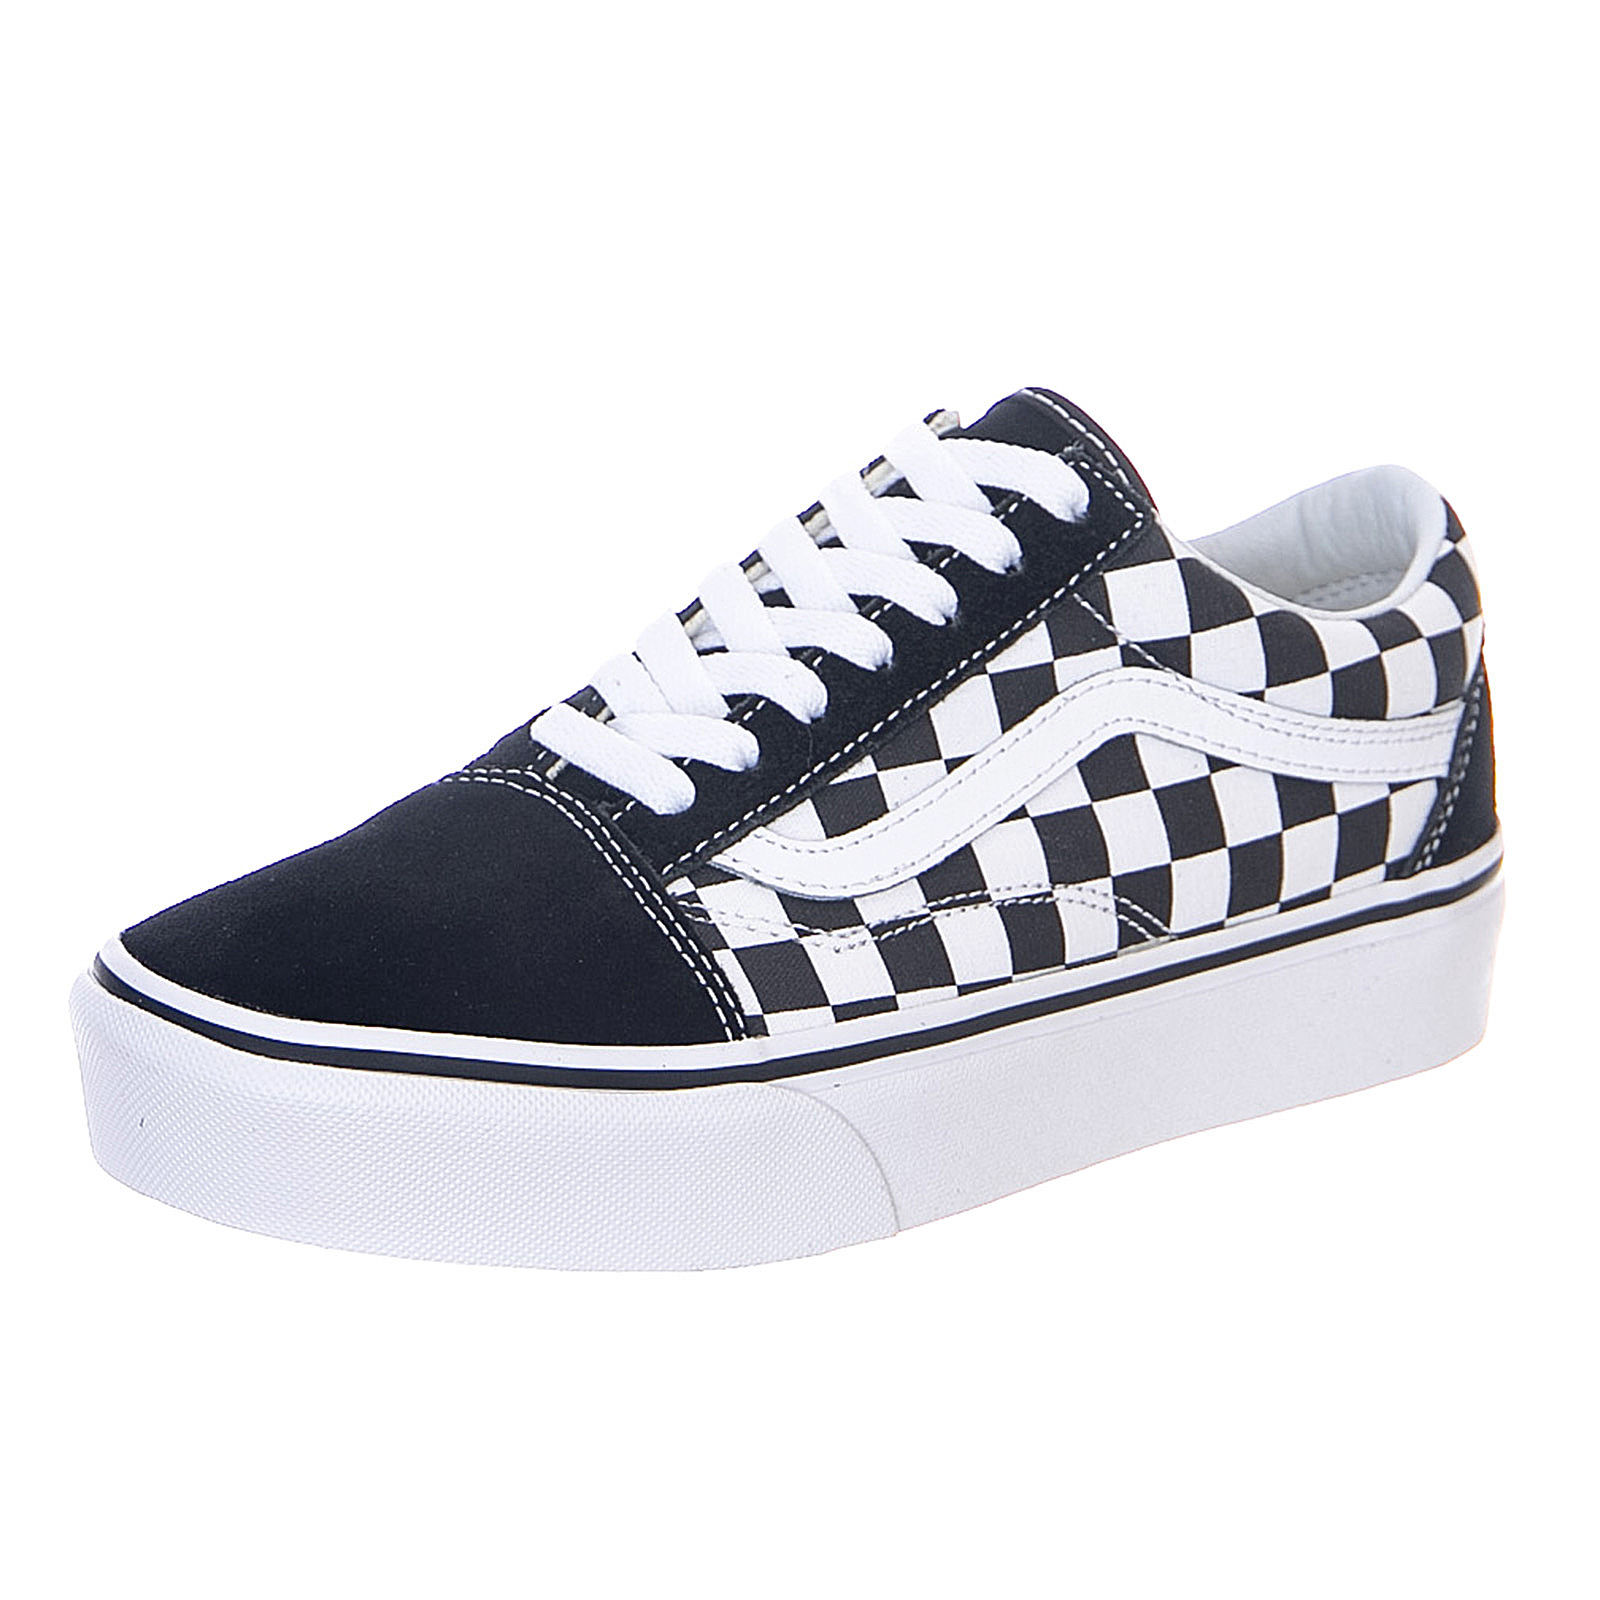 a9cd26650a80 Vans Checkerboard Old Skool Platform - Black True White - Sneakers  Stringate Uomo Nero